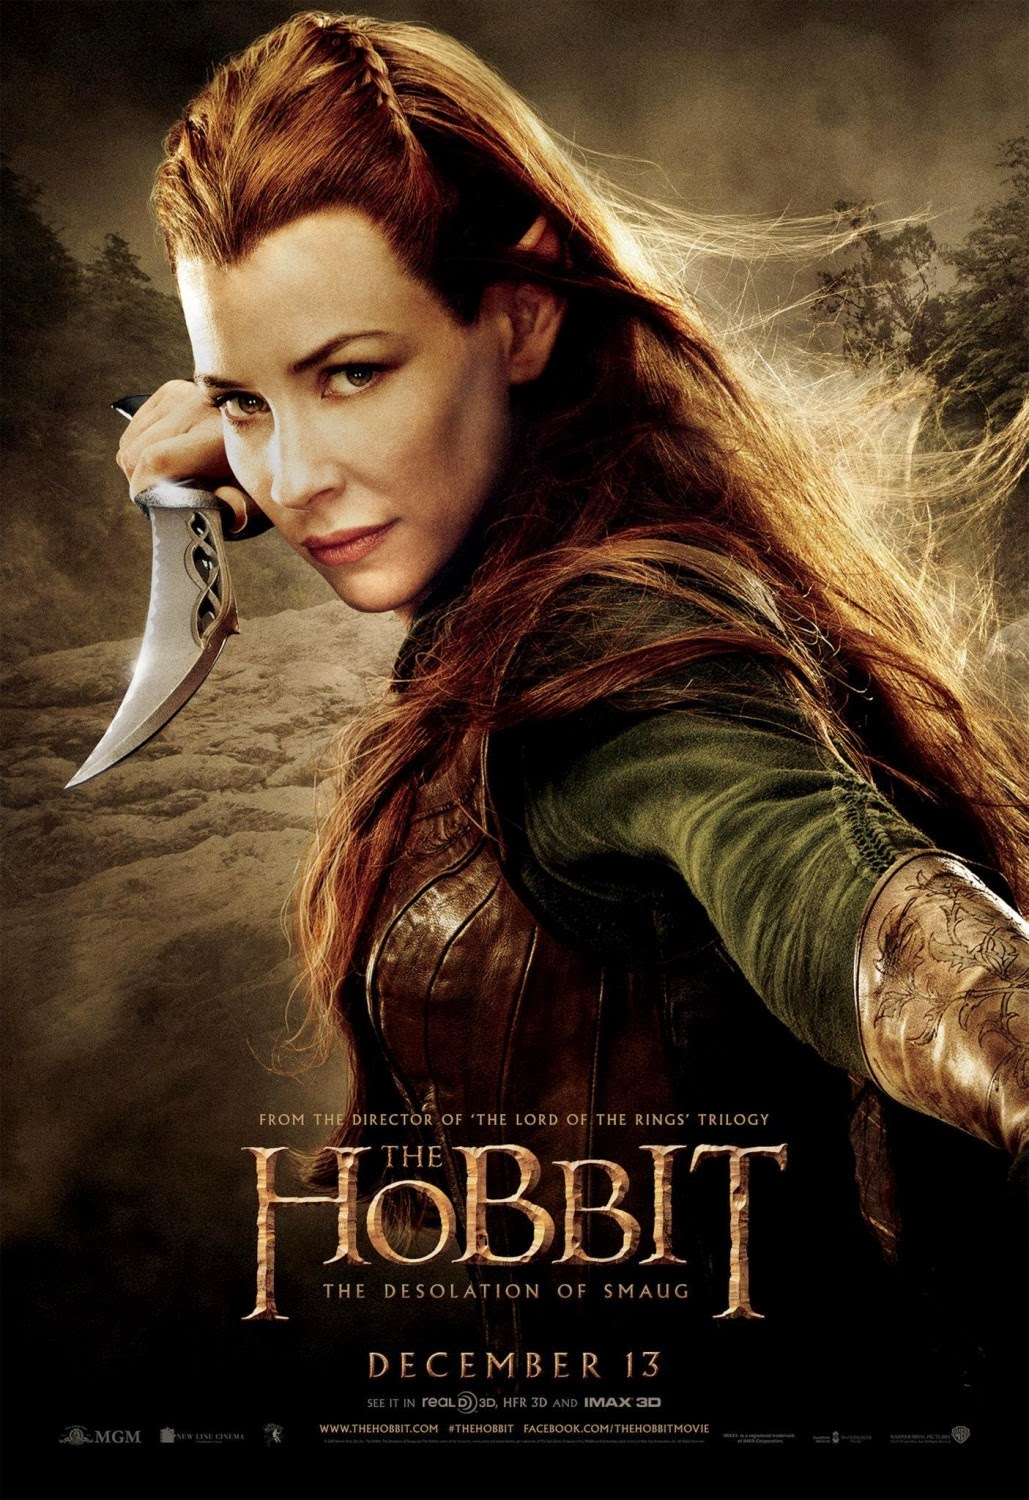 THE HOBBIT: THE DESOLATION OF SMAUG - 8 New Posters | The ...